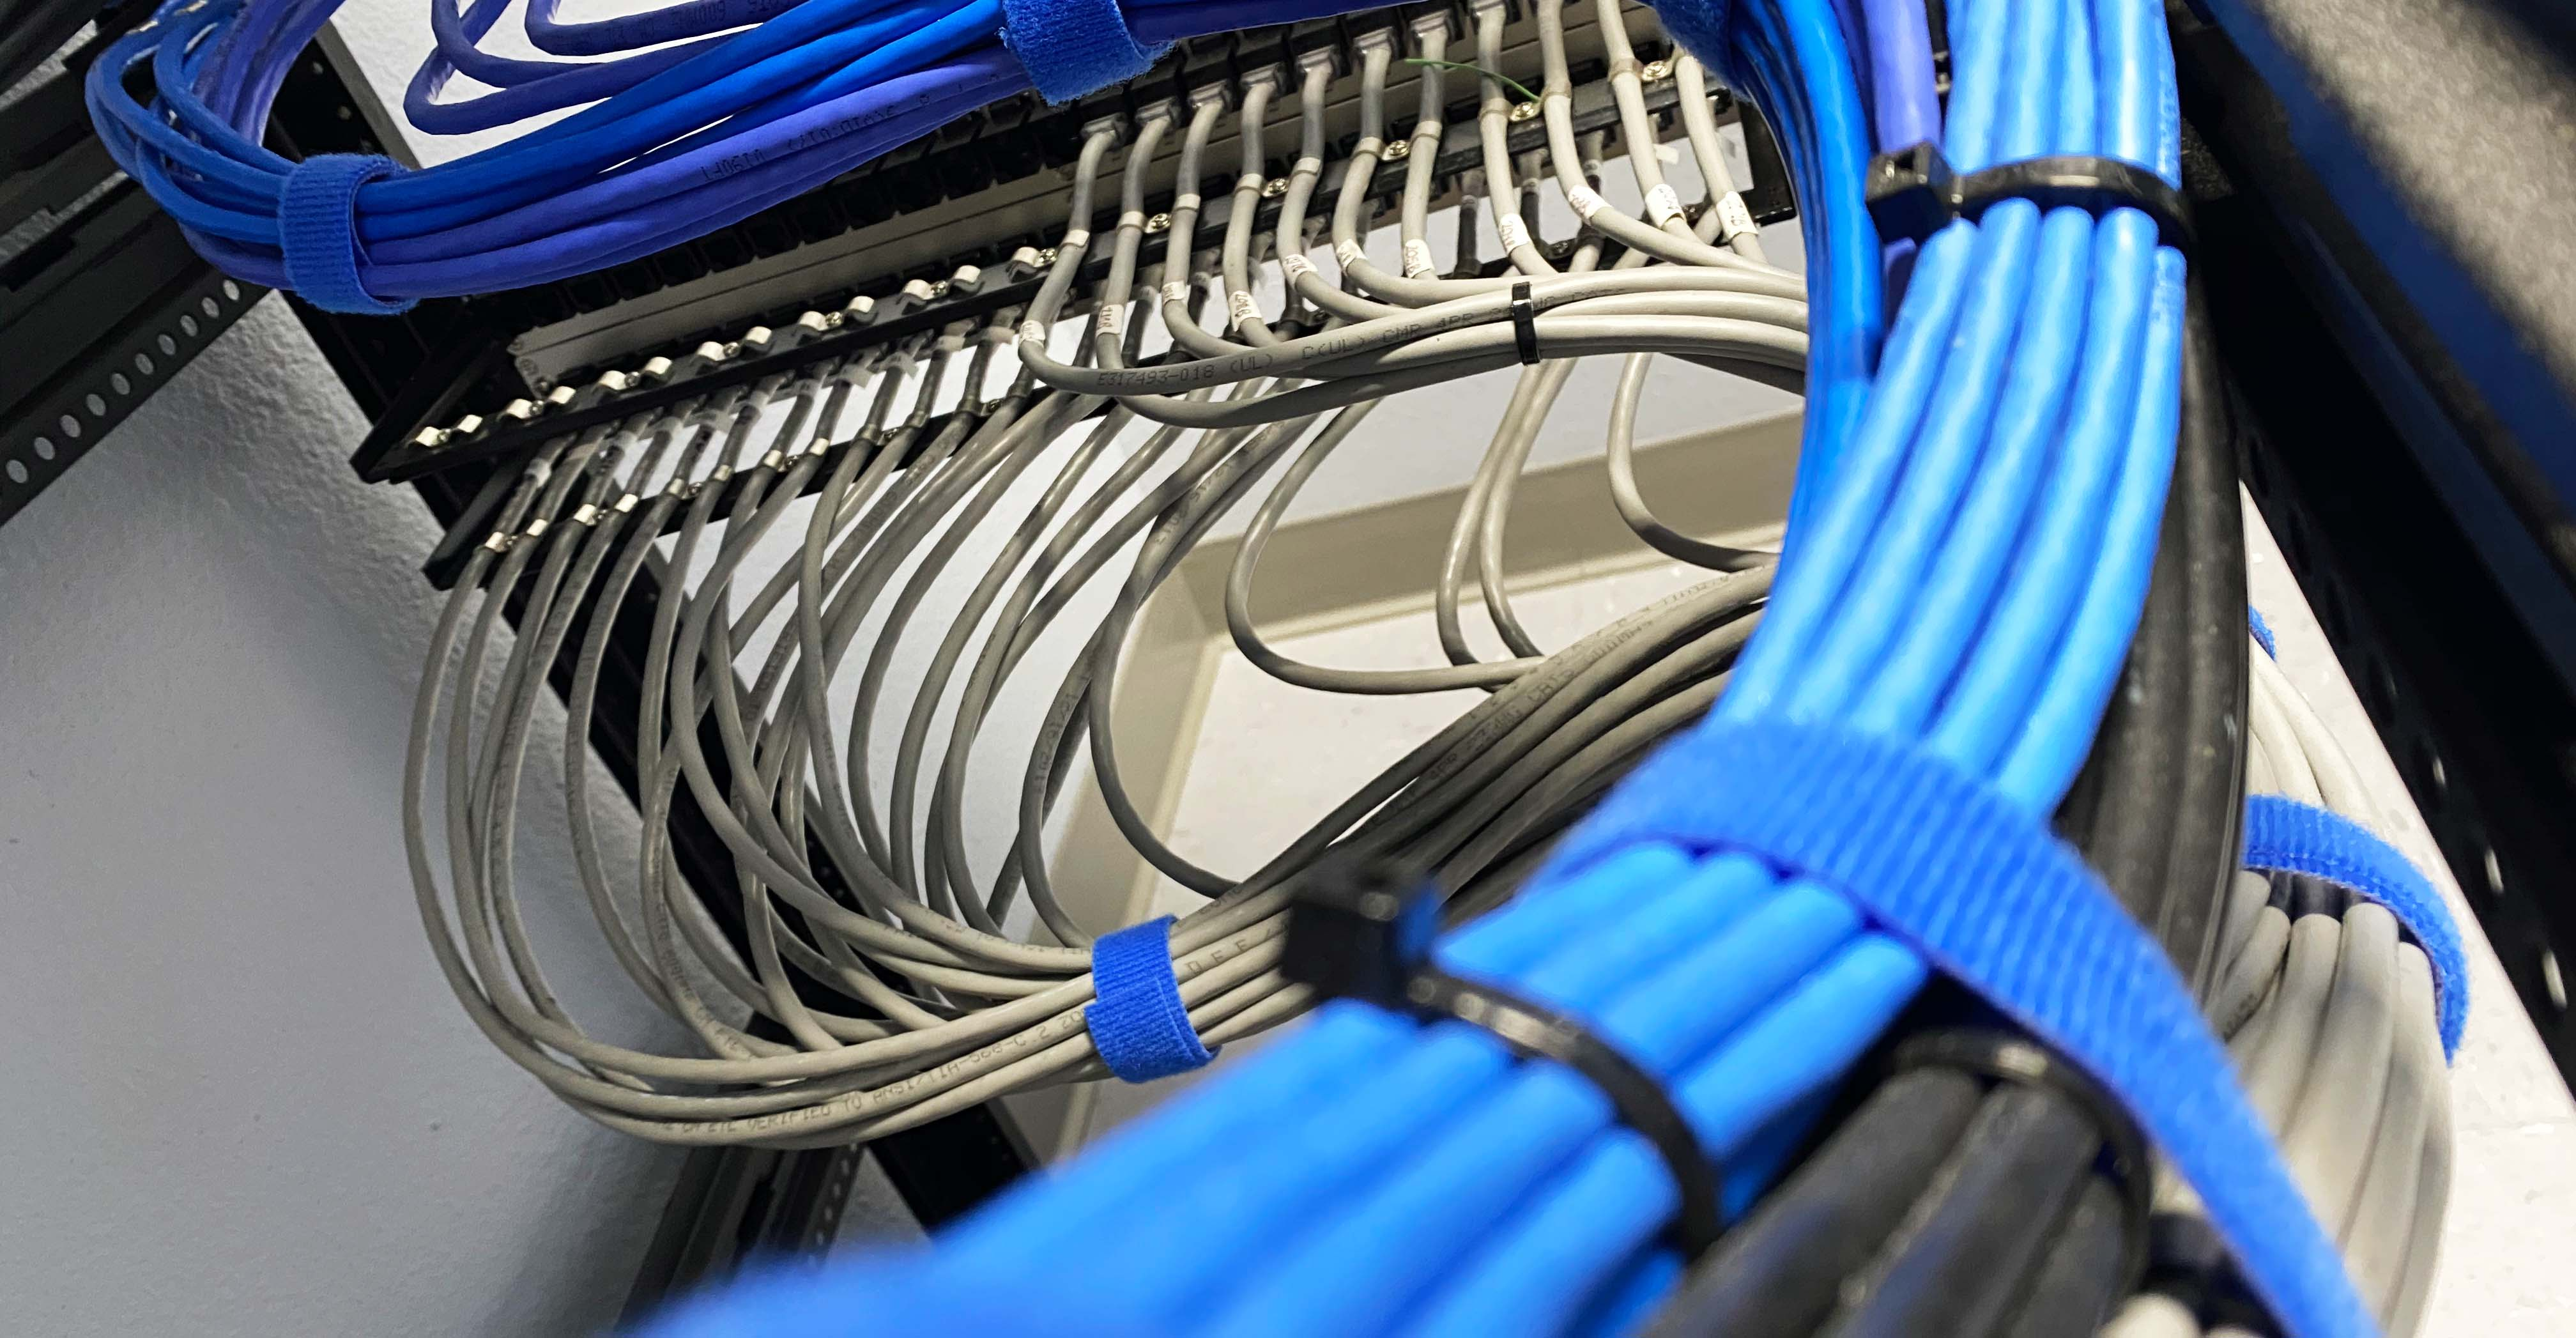 ringplan-cabling-installation-and-cabling-management-IMG_6192